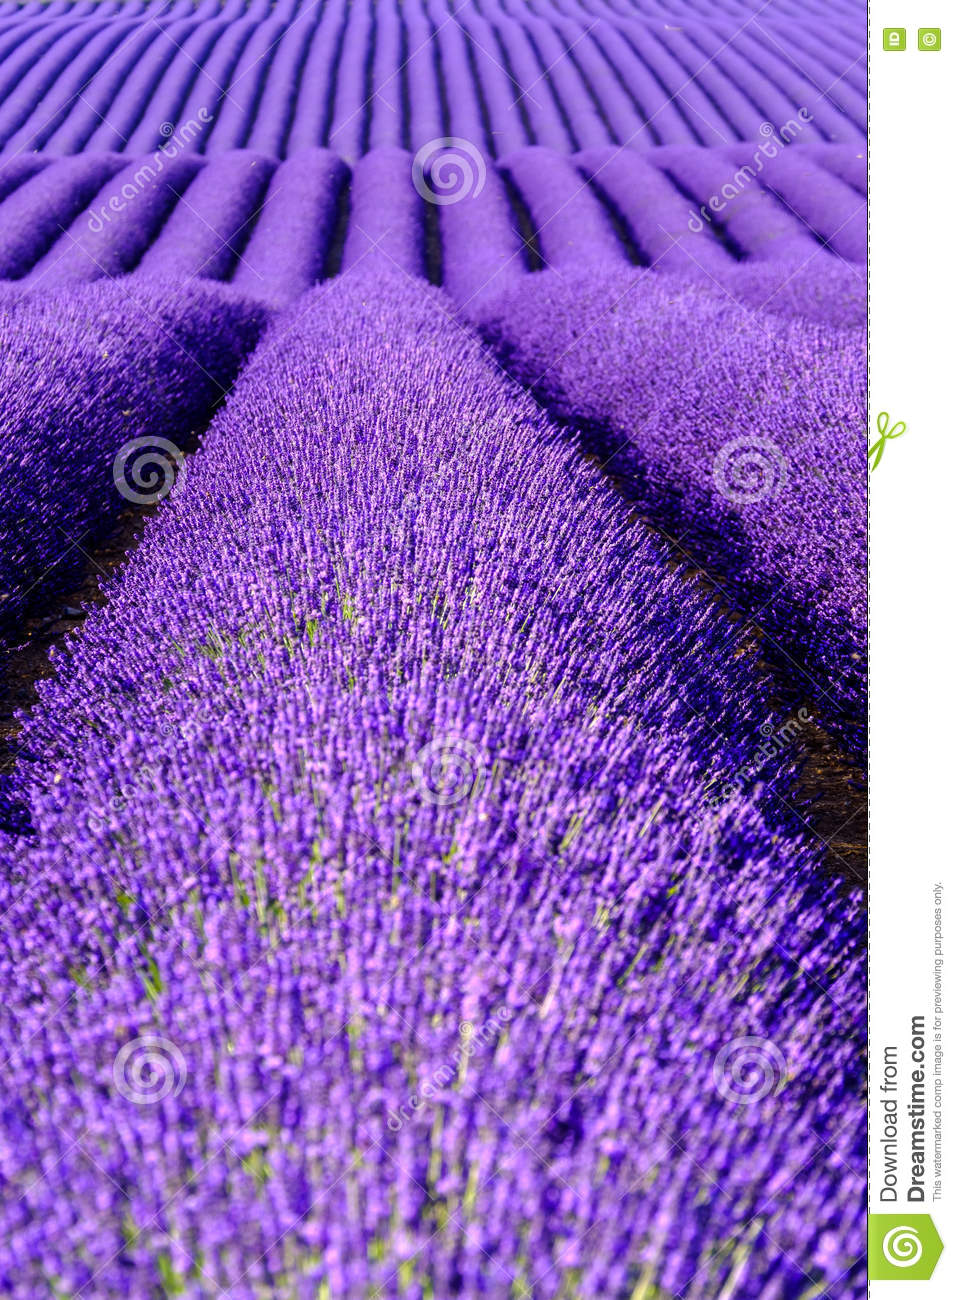 Photo About Lavender Flower Blooming Scented Fields In Endless Rows Valensole Plateau Provence France Europe Image In 2020 Lavender Flowers Images Of France Bloom